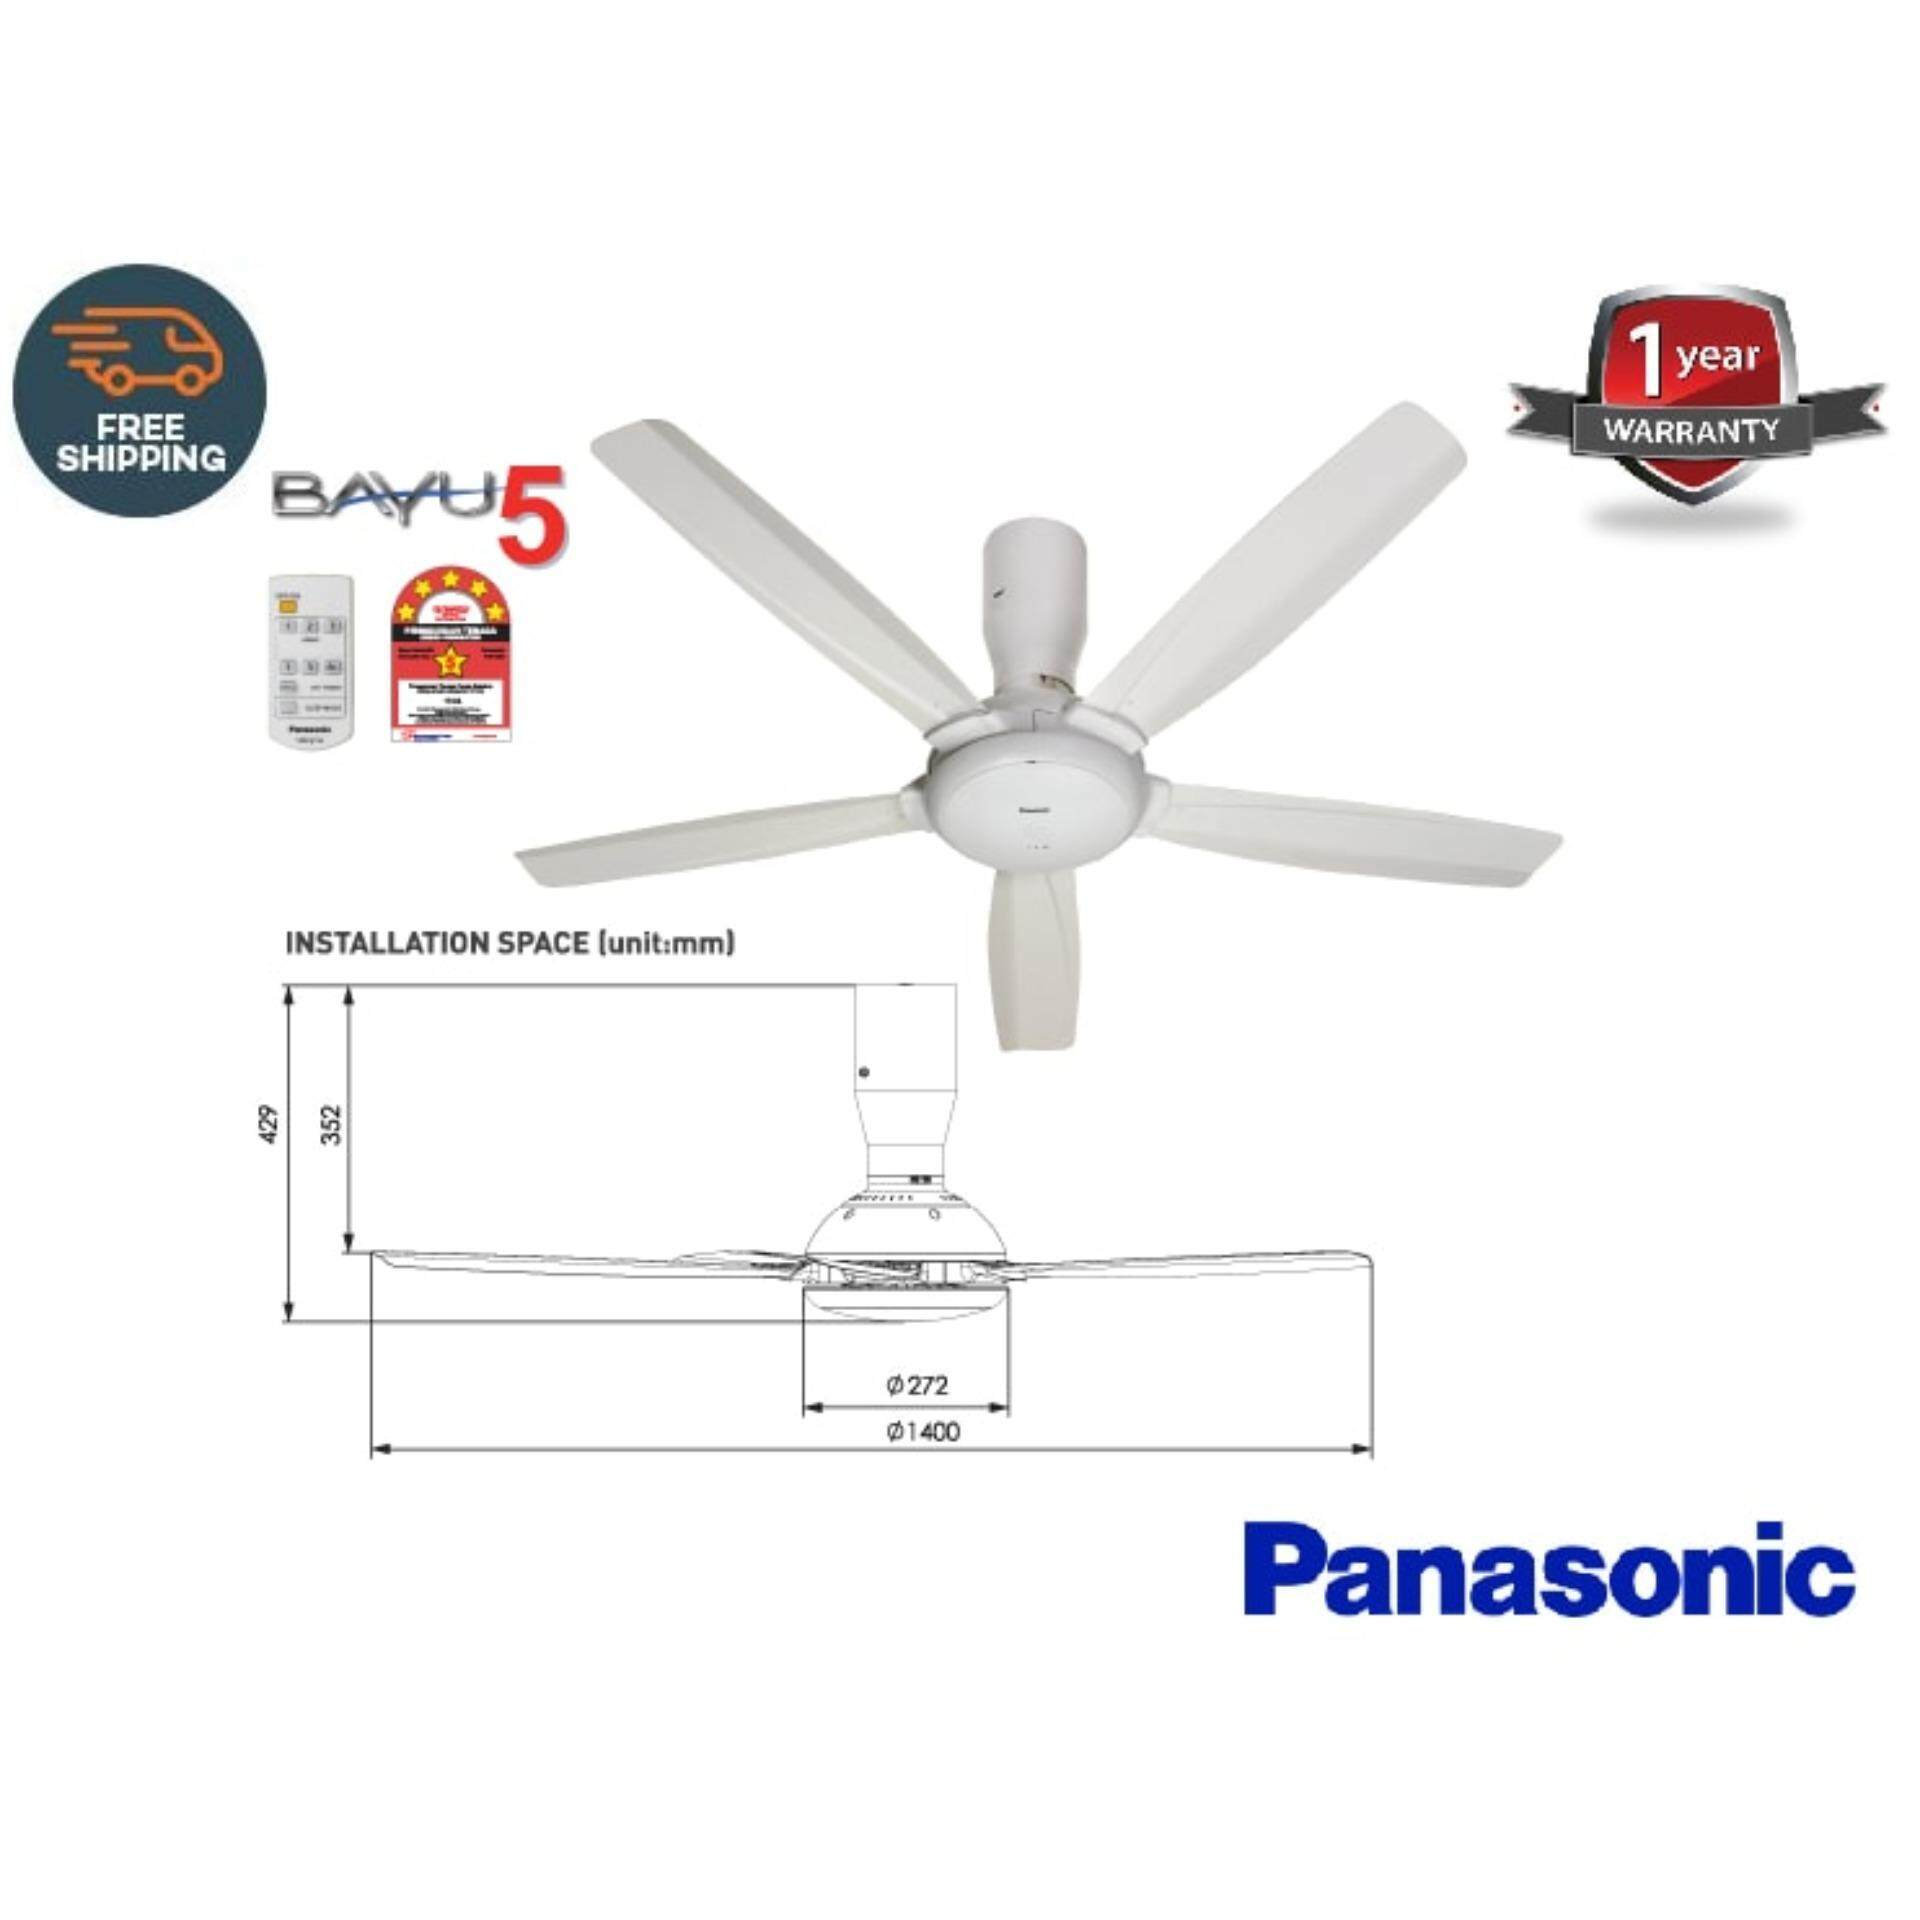 room really is for my t light huge reality difference the blog from photo f vbhqh blade but can or study panasonic led in show without below ceiling fan with